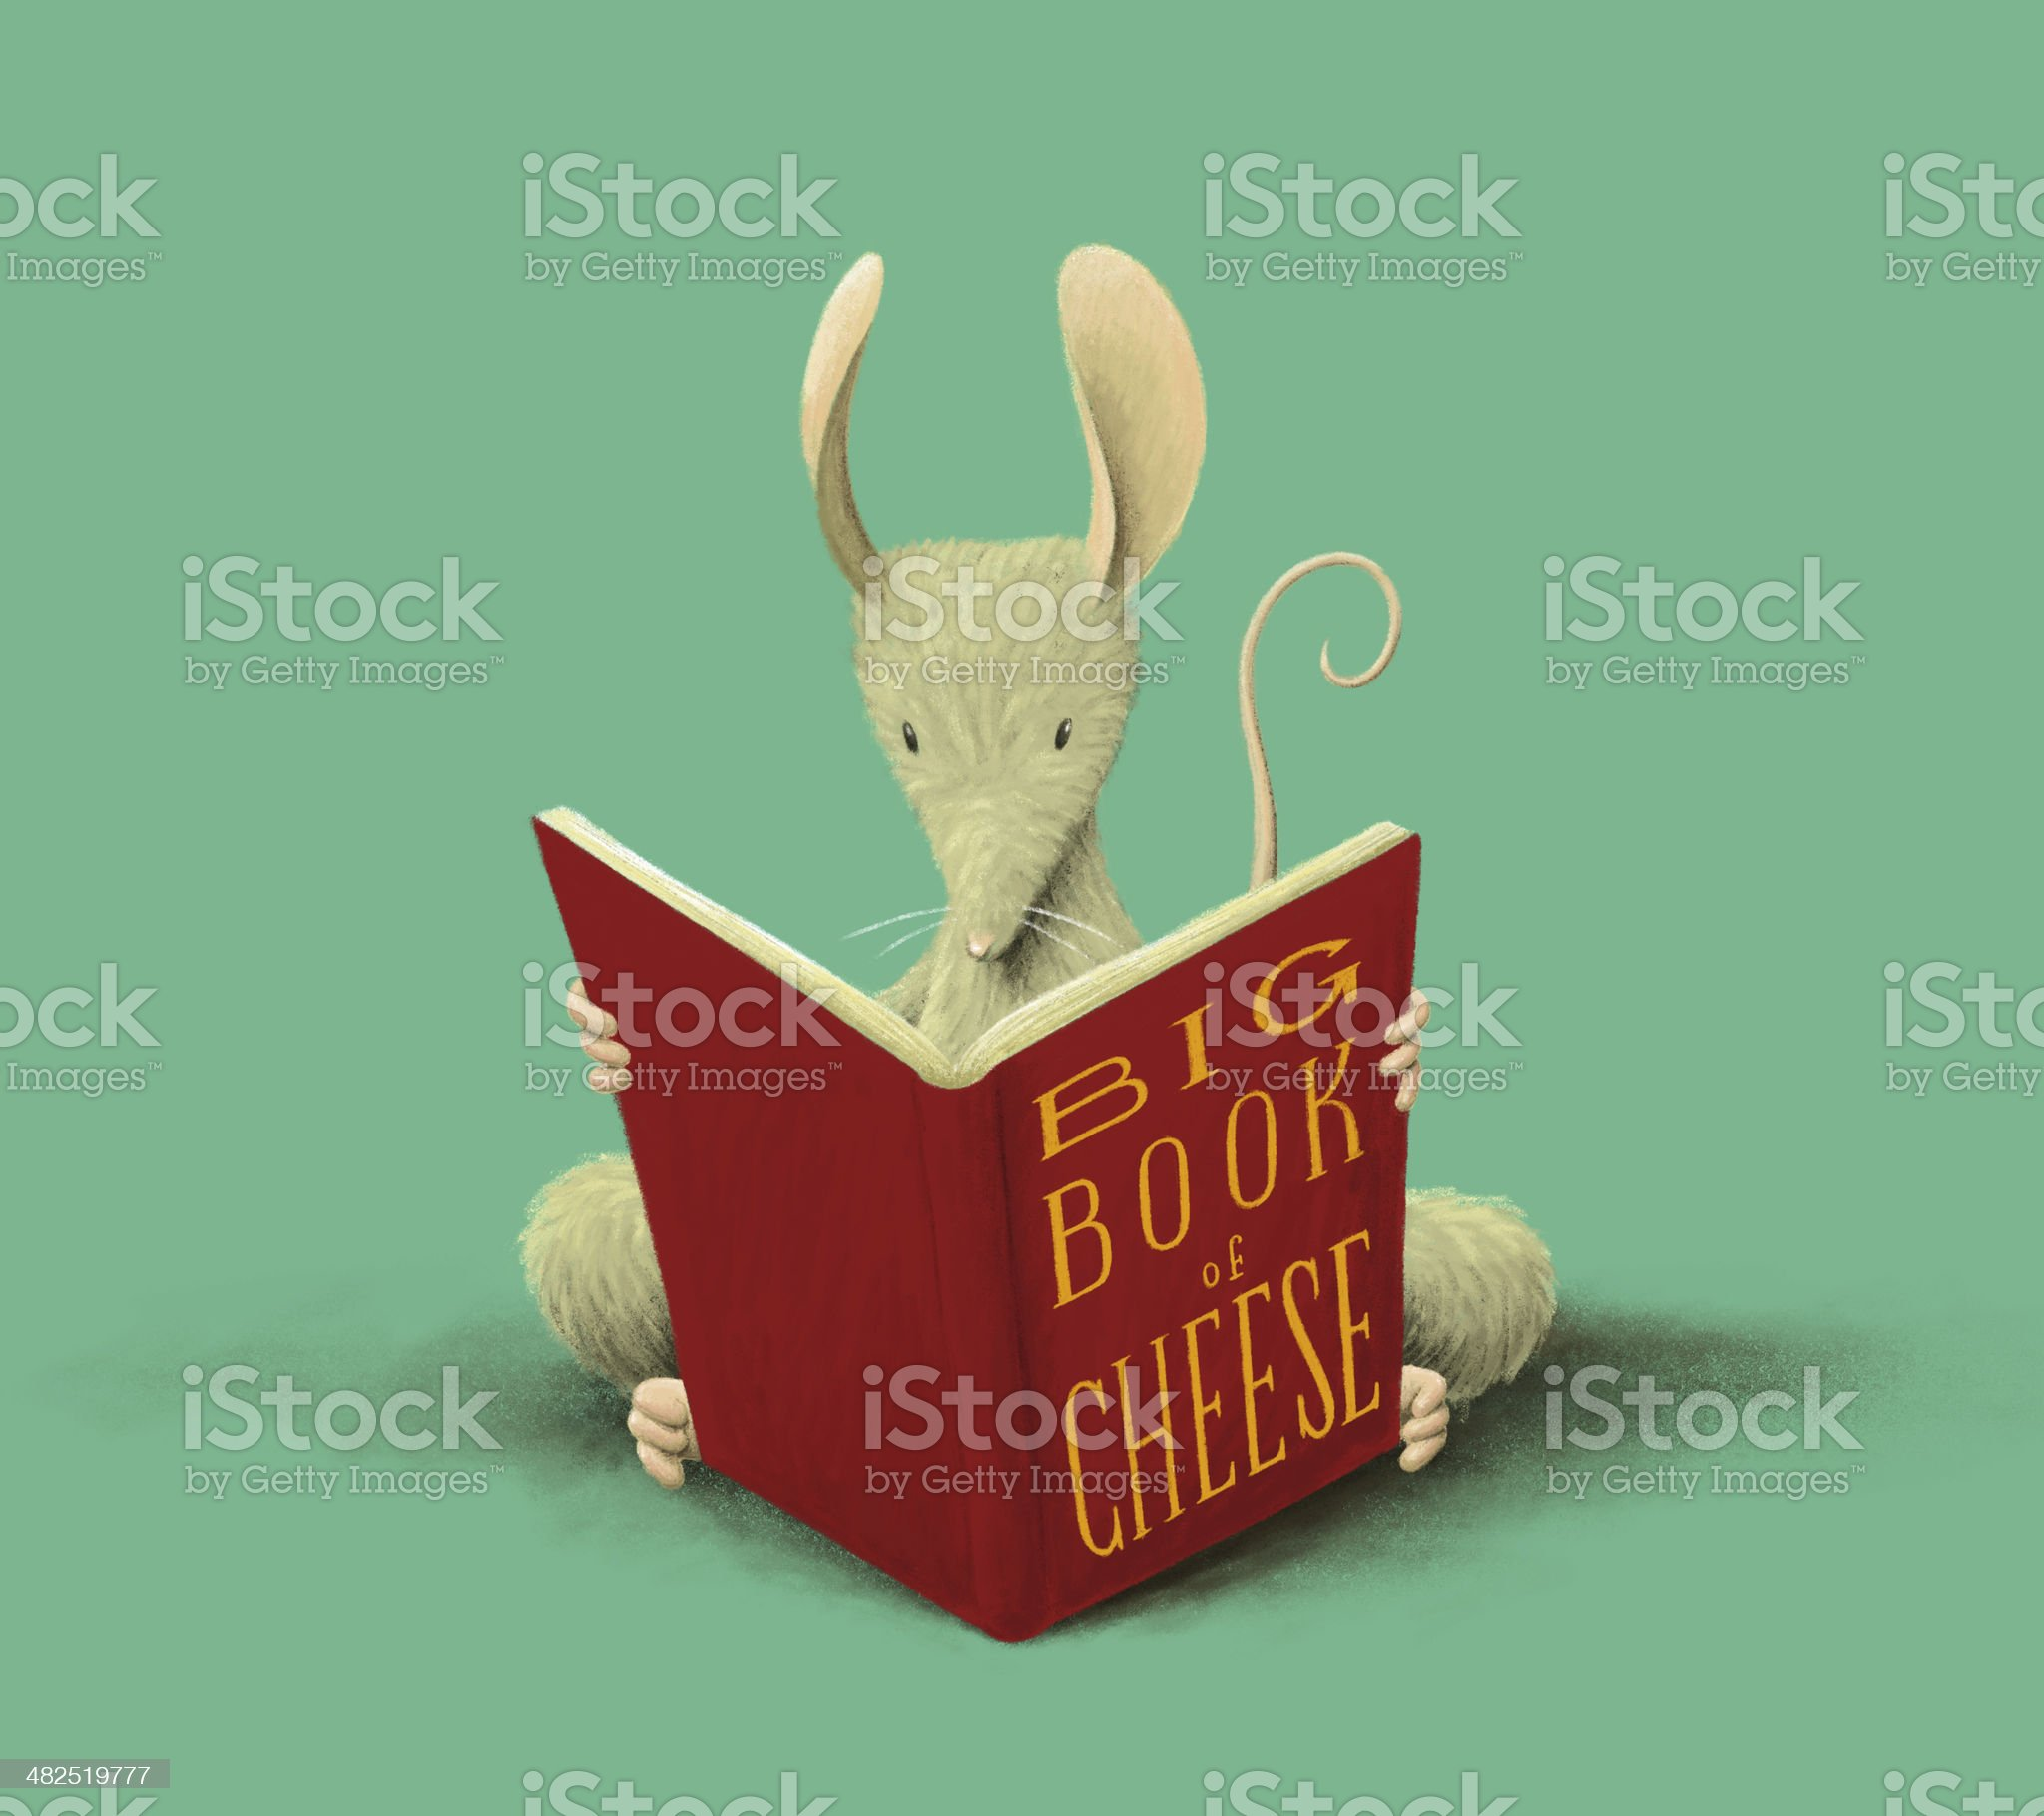 Big Book of Cheese royalty-free stock photo